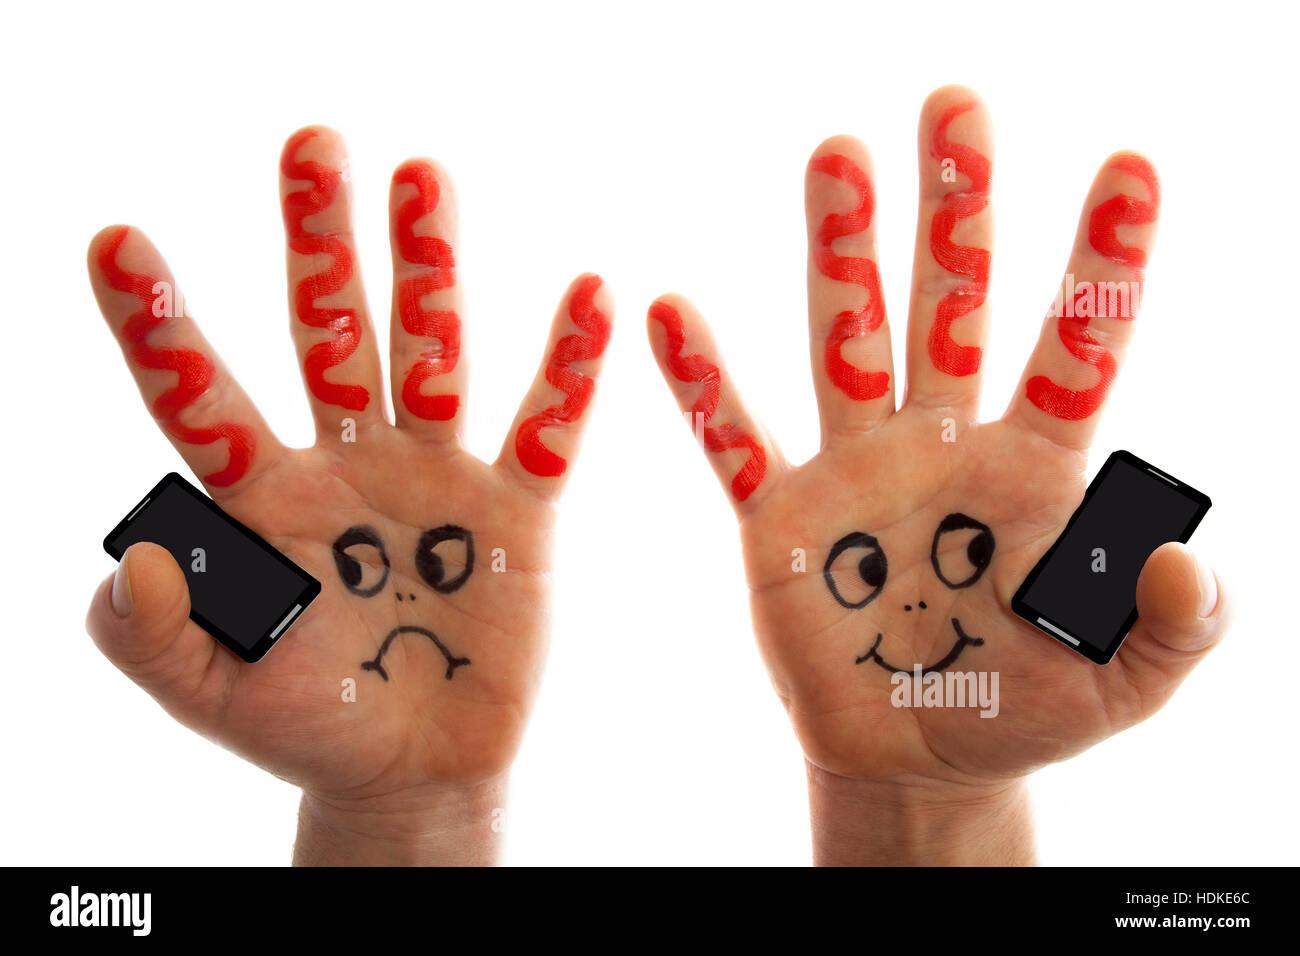 Hands holding phones  and having a conversation - Stock Image